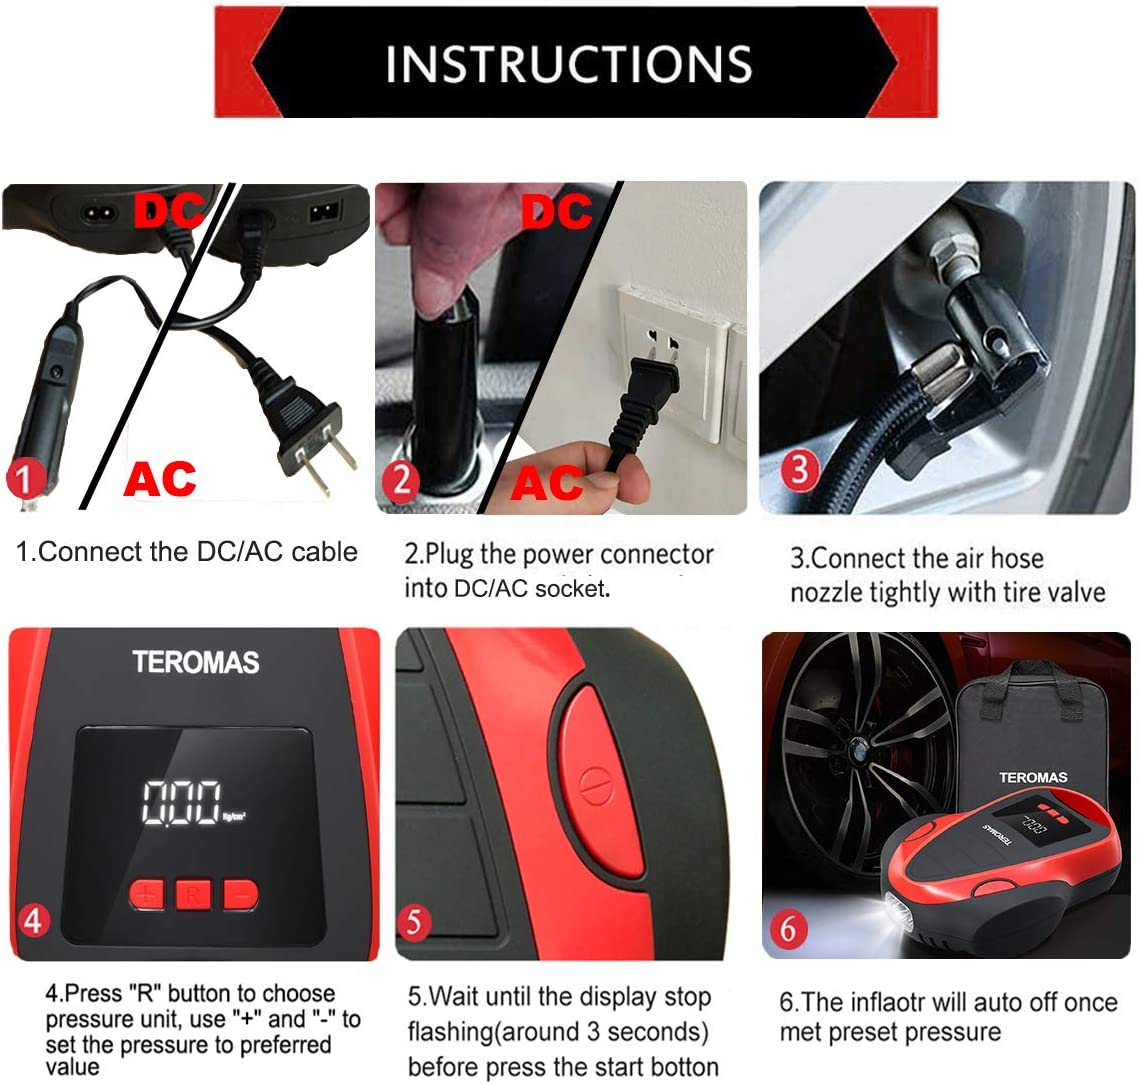 Teromas Portable DC/AC Air Pump for Car Tires 12V DC and Other ...